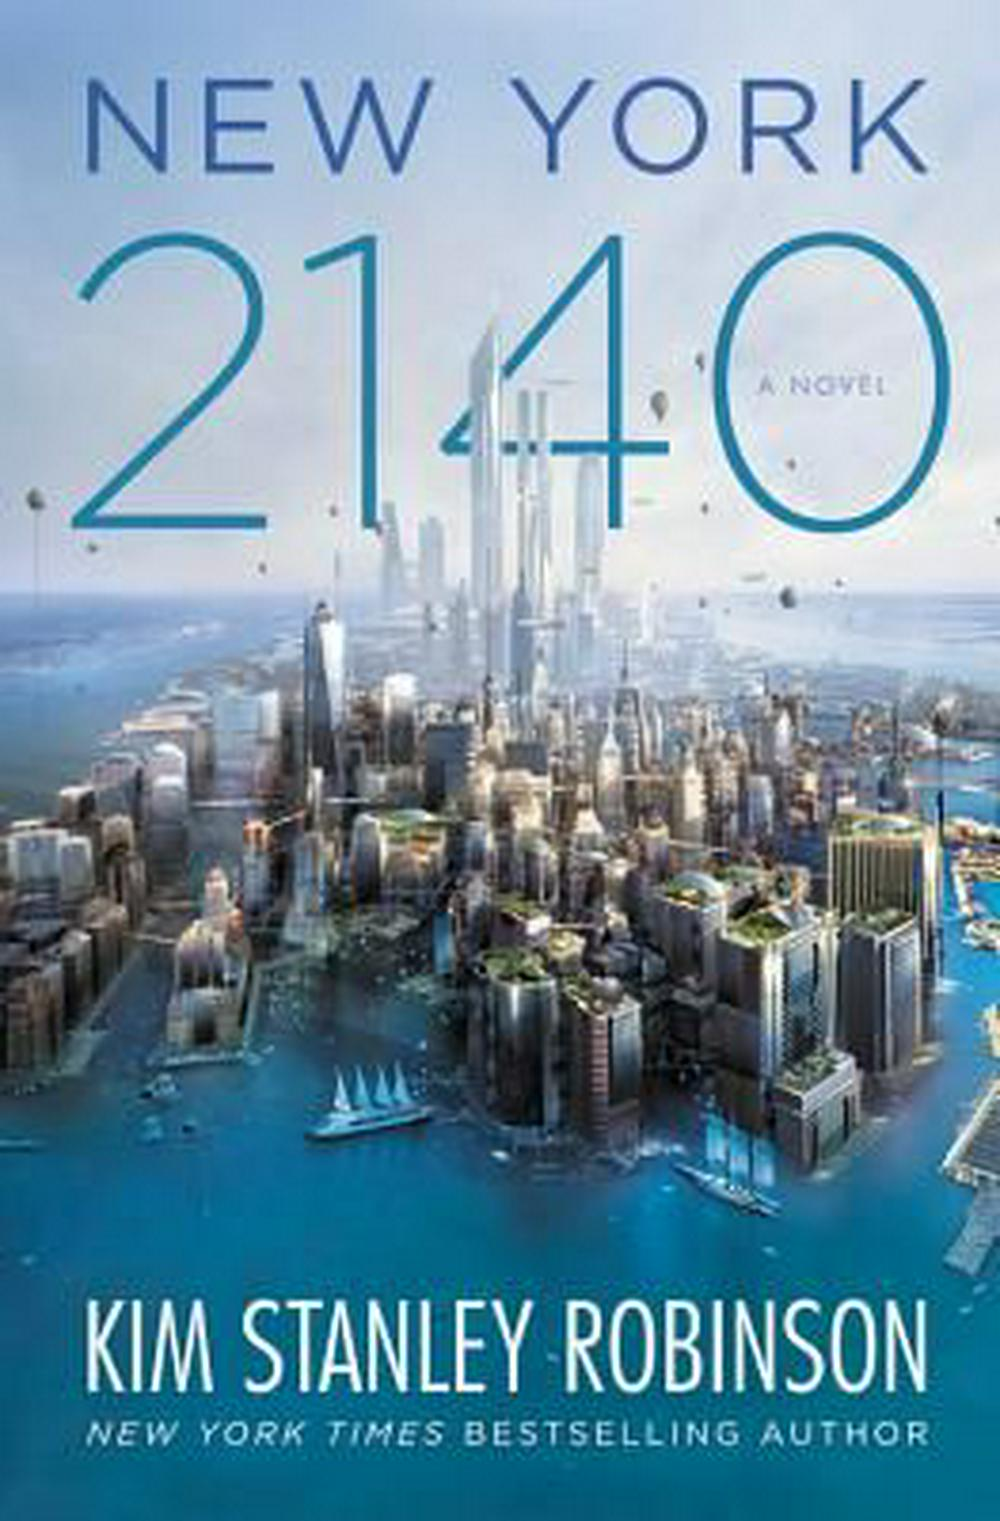 New York 2140 by Kim Stanley Robinson, ISBN: 9780316262347